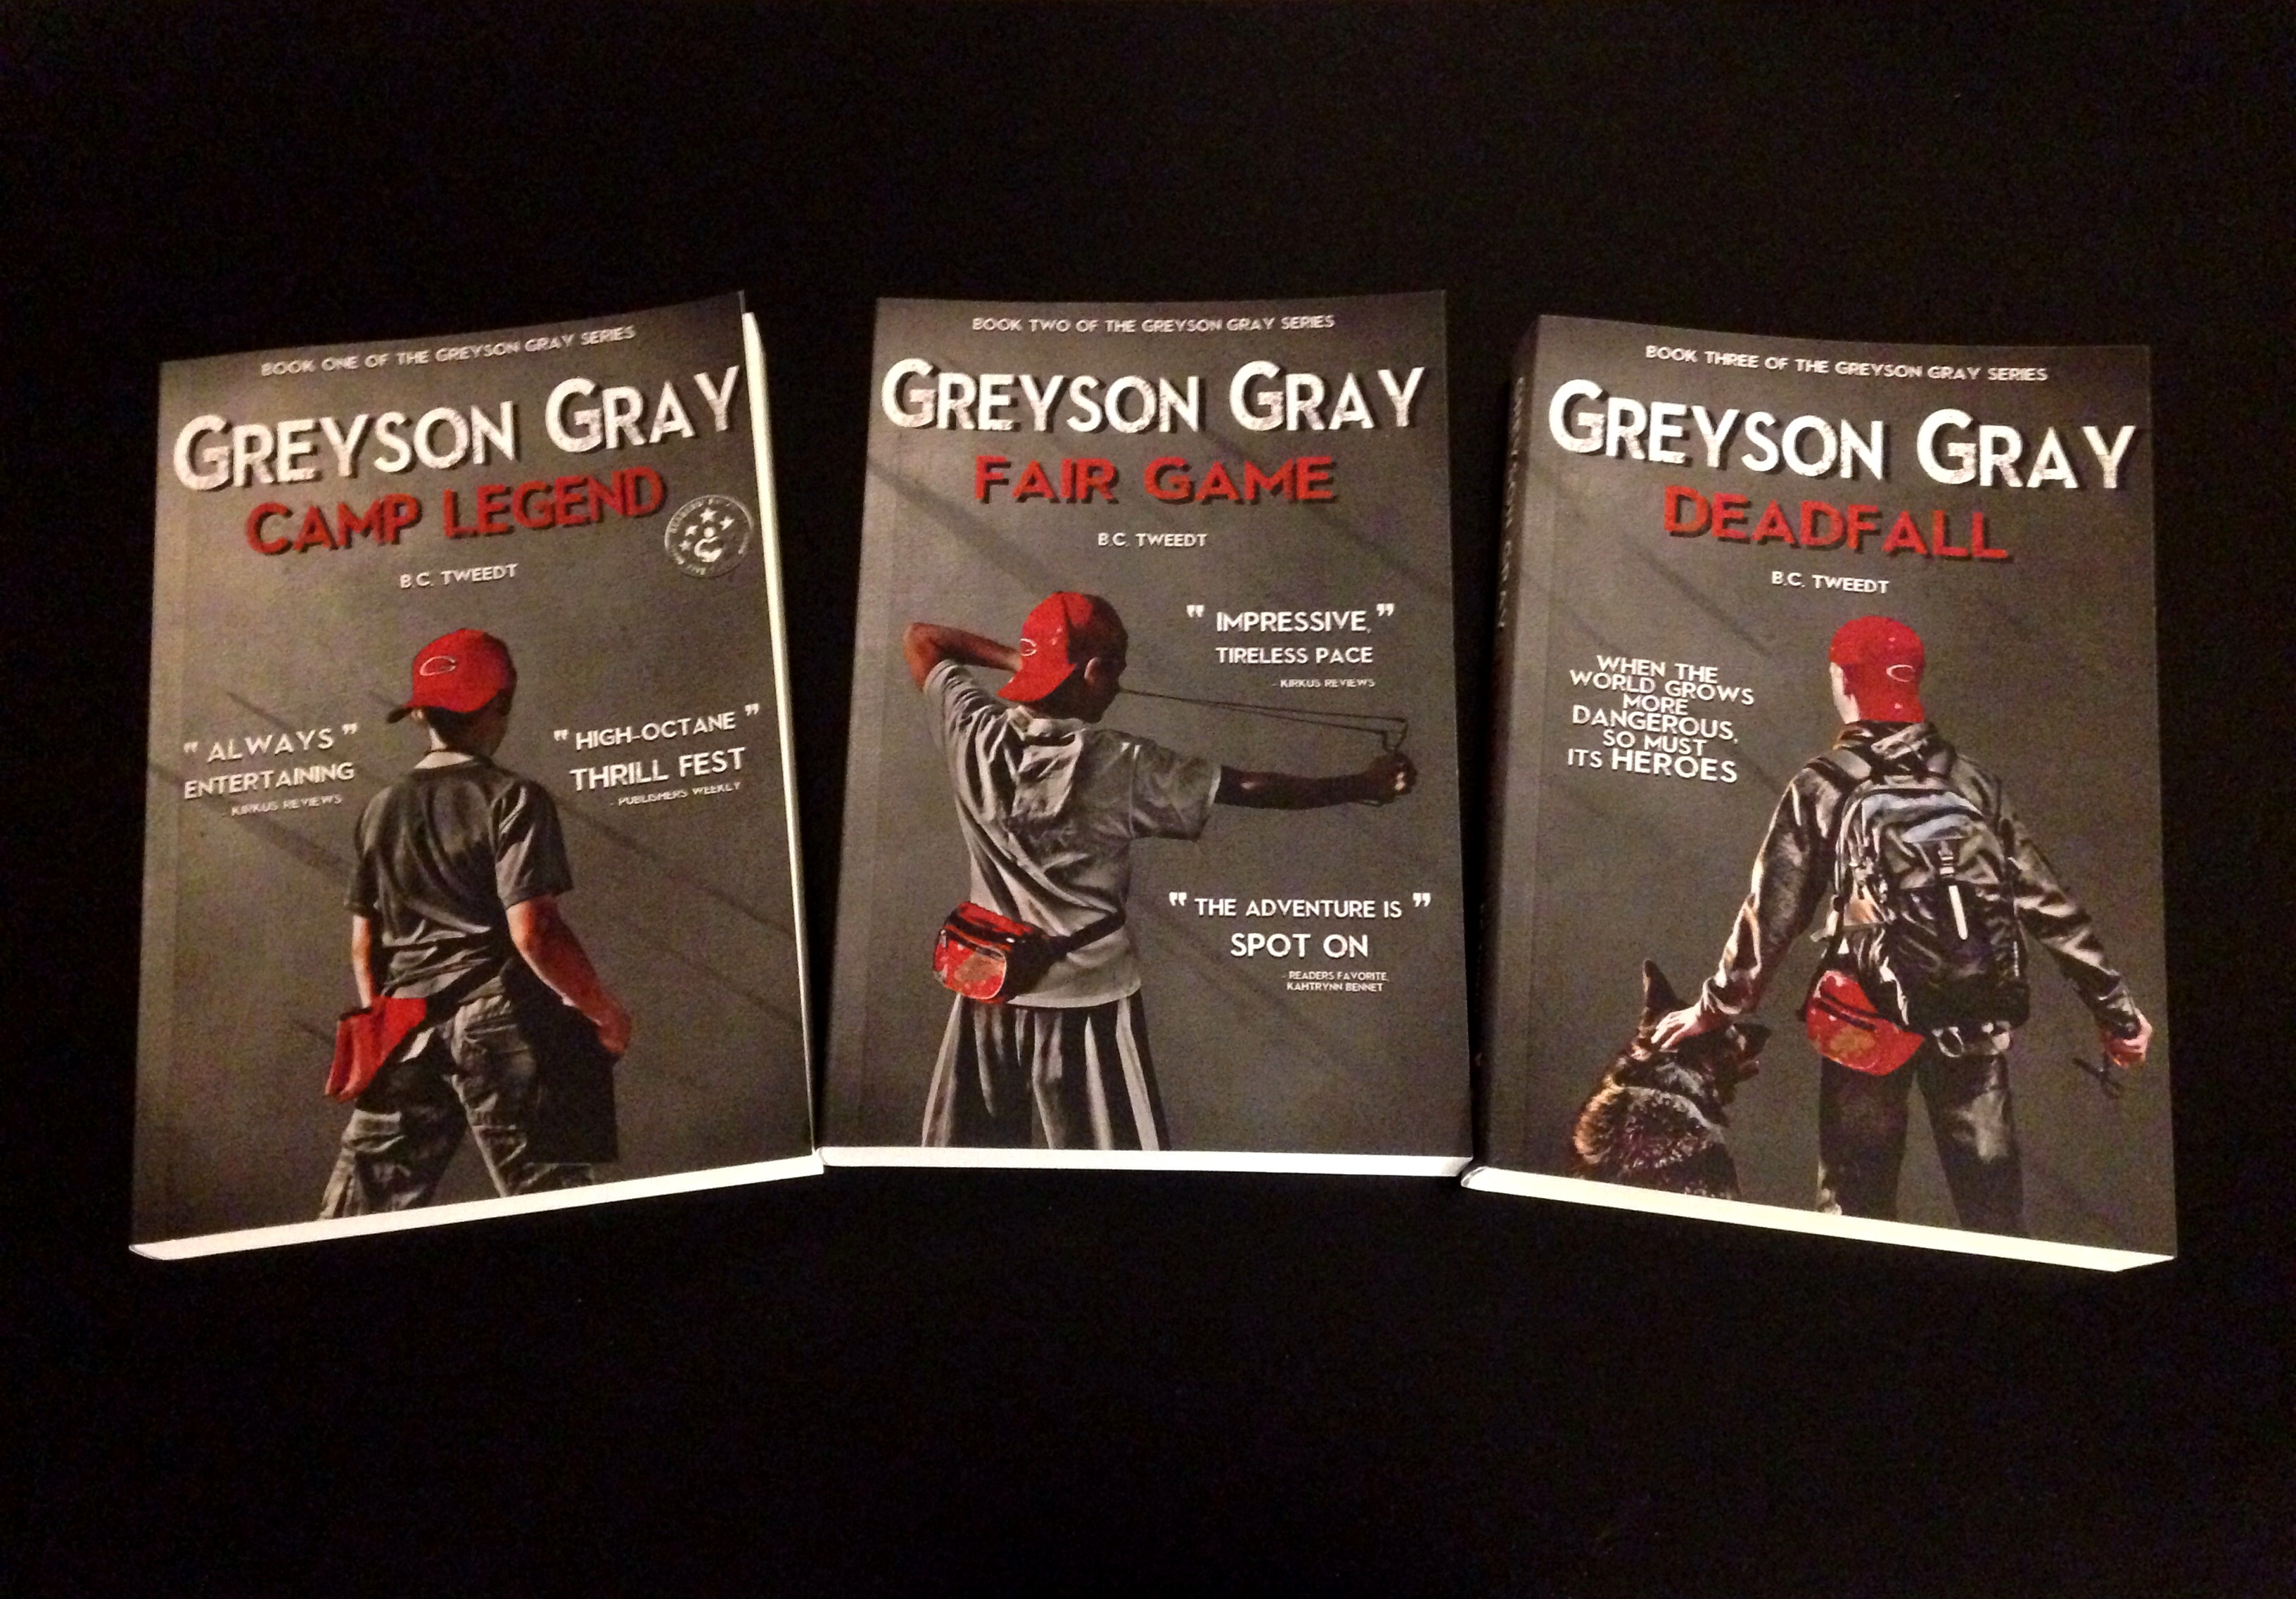 The Greyson Gray Series